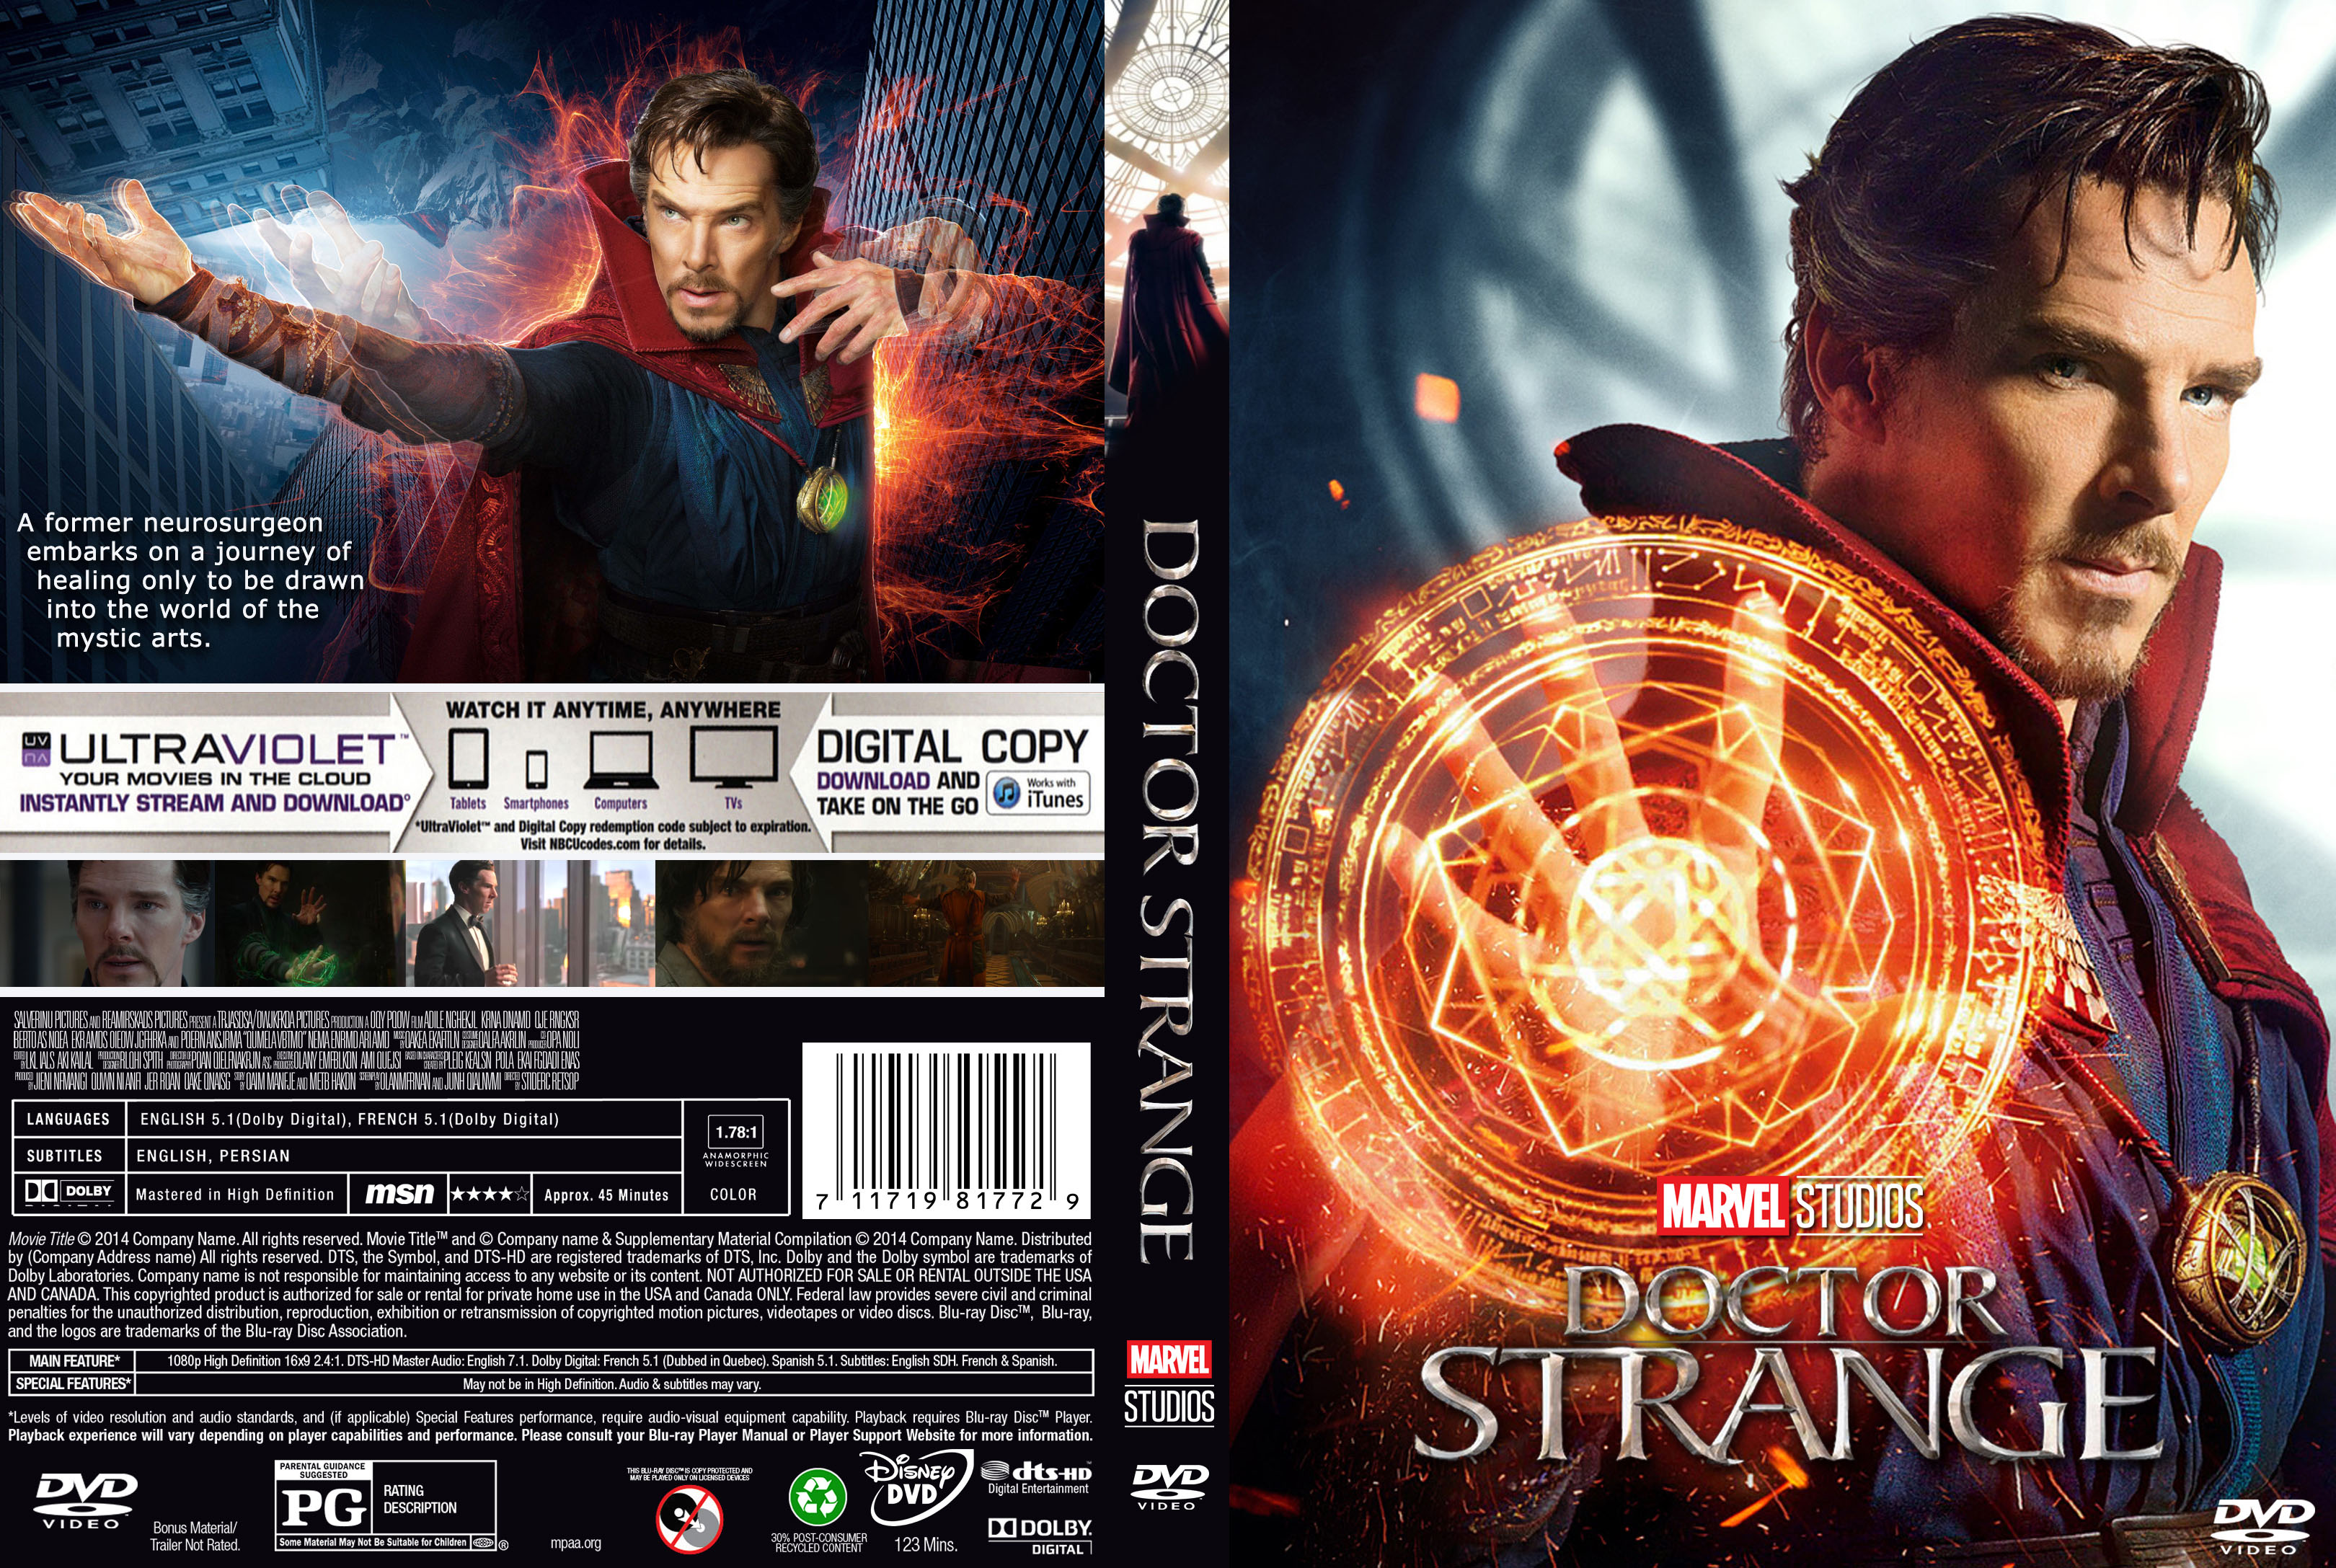 Doctor Strange (2016) R0 Custom DVD Cover | Dvd Covers and